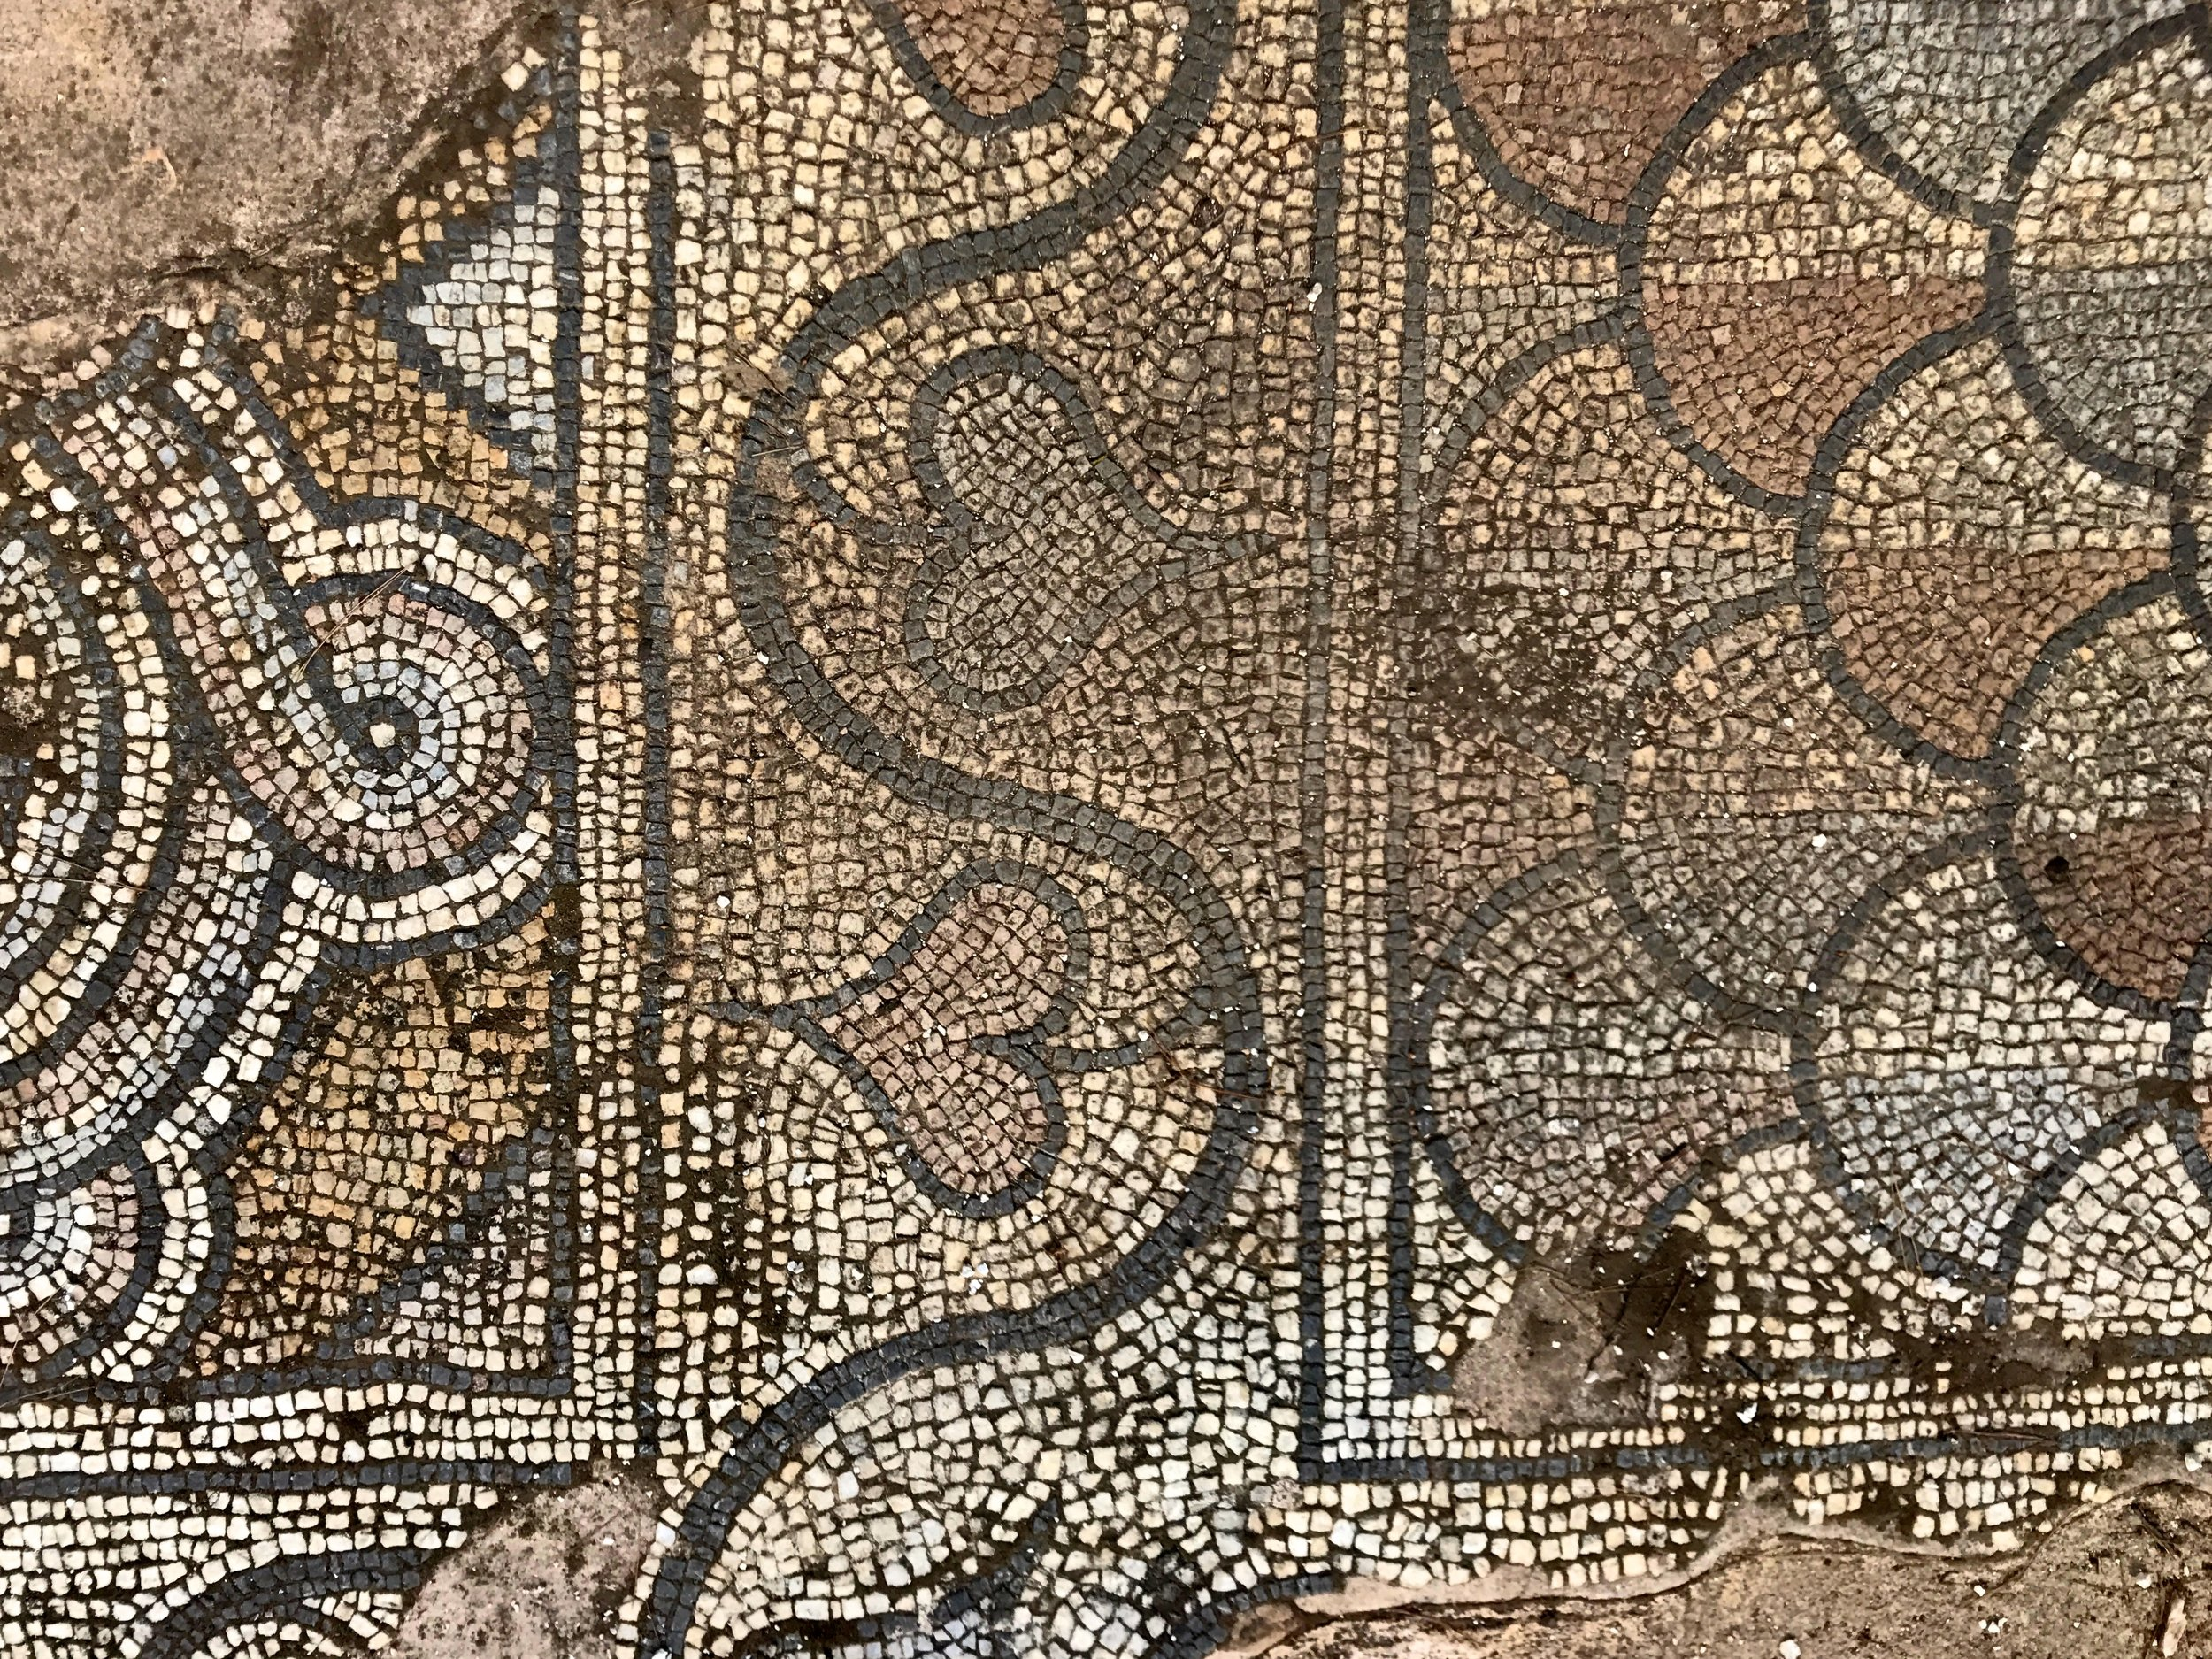 Mosaic Fragments in a Park